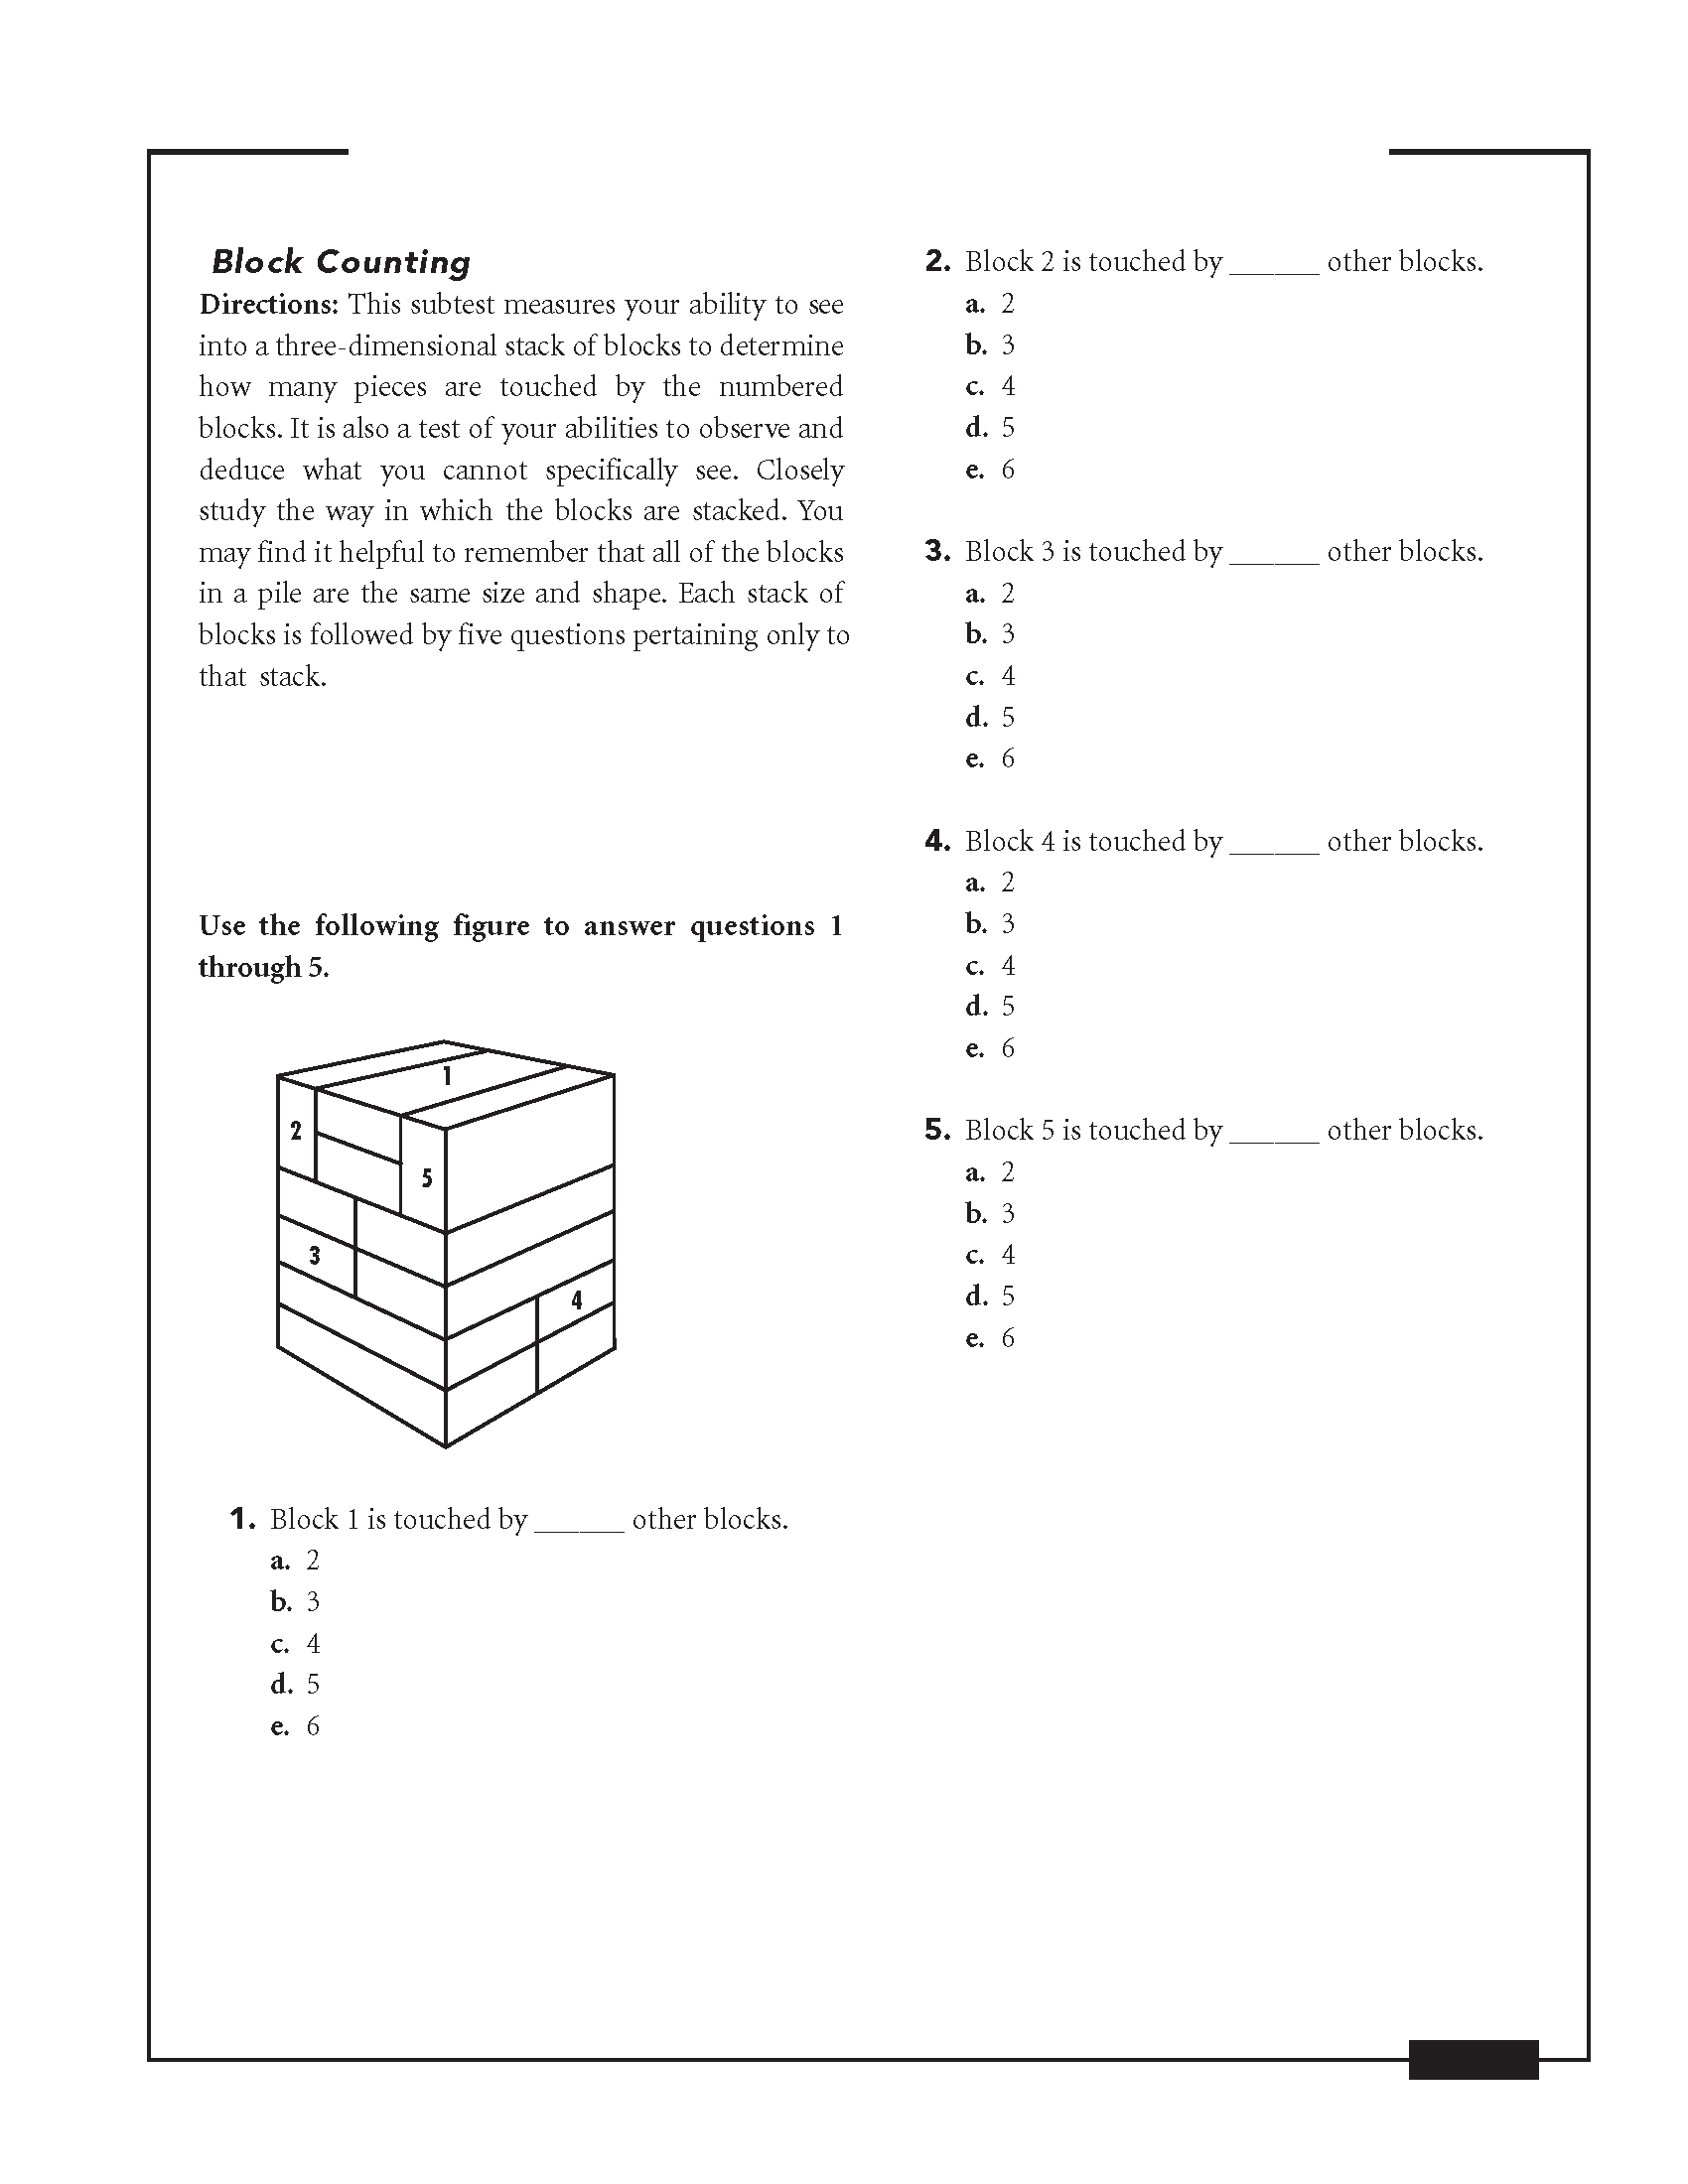 AFOQTGuide.com Block Counting Problems Image